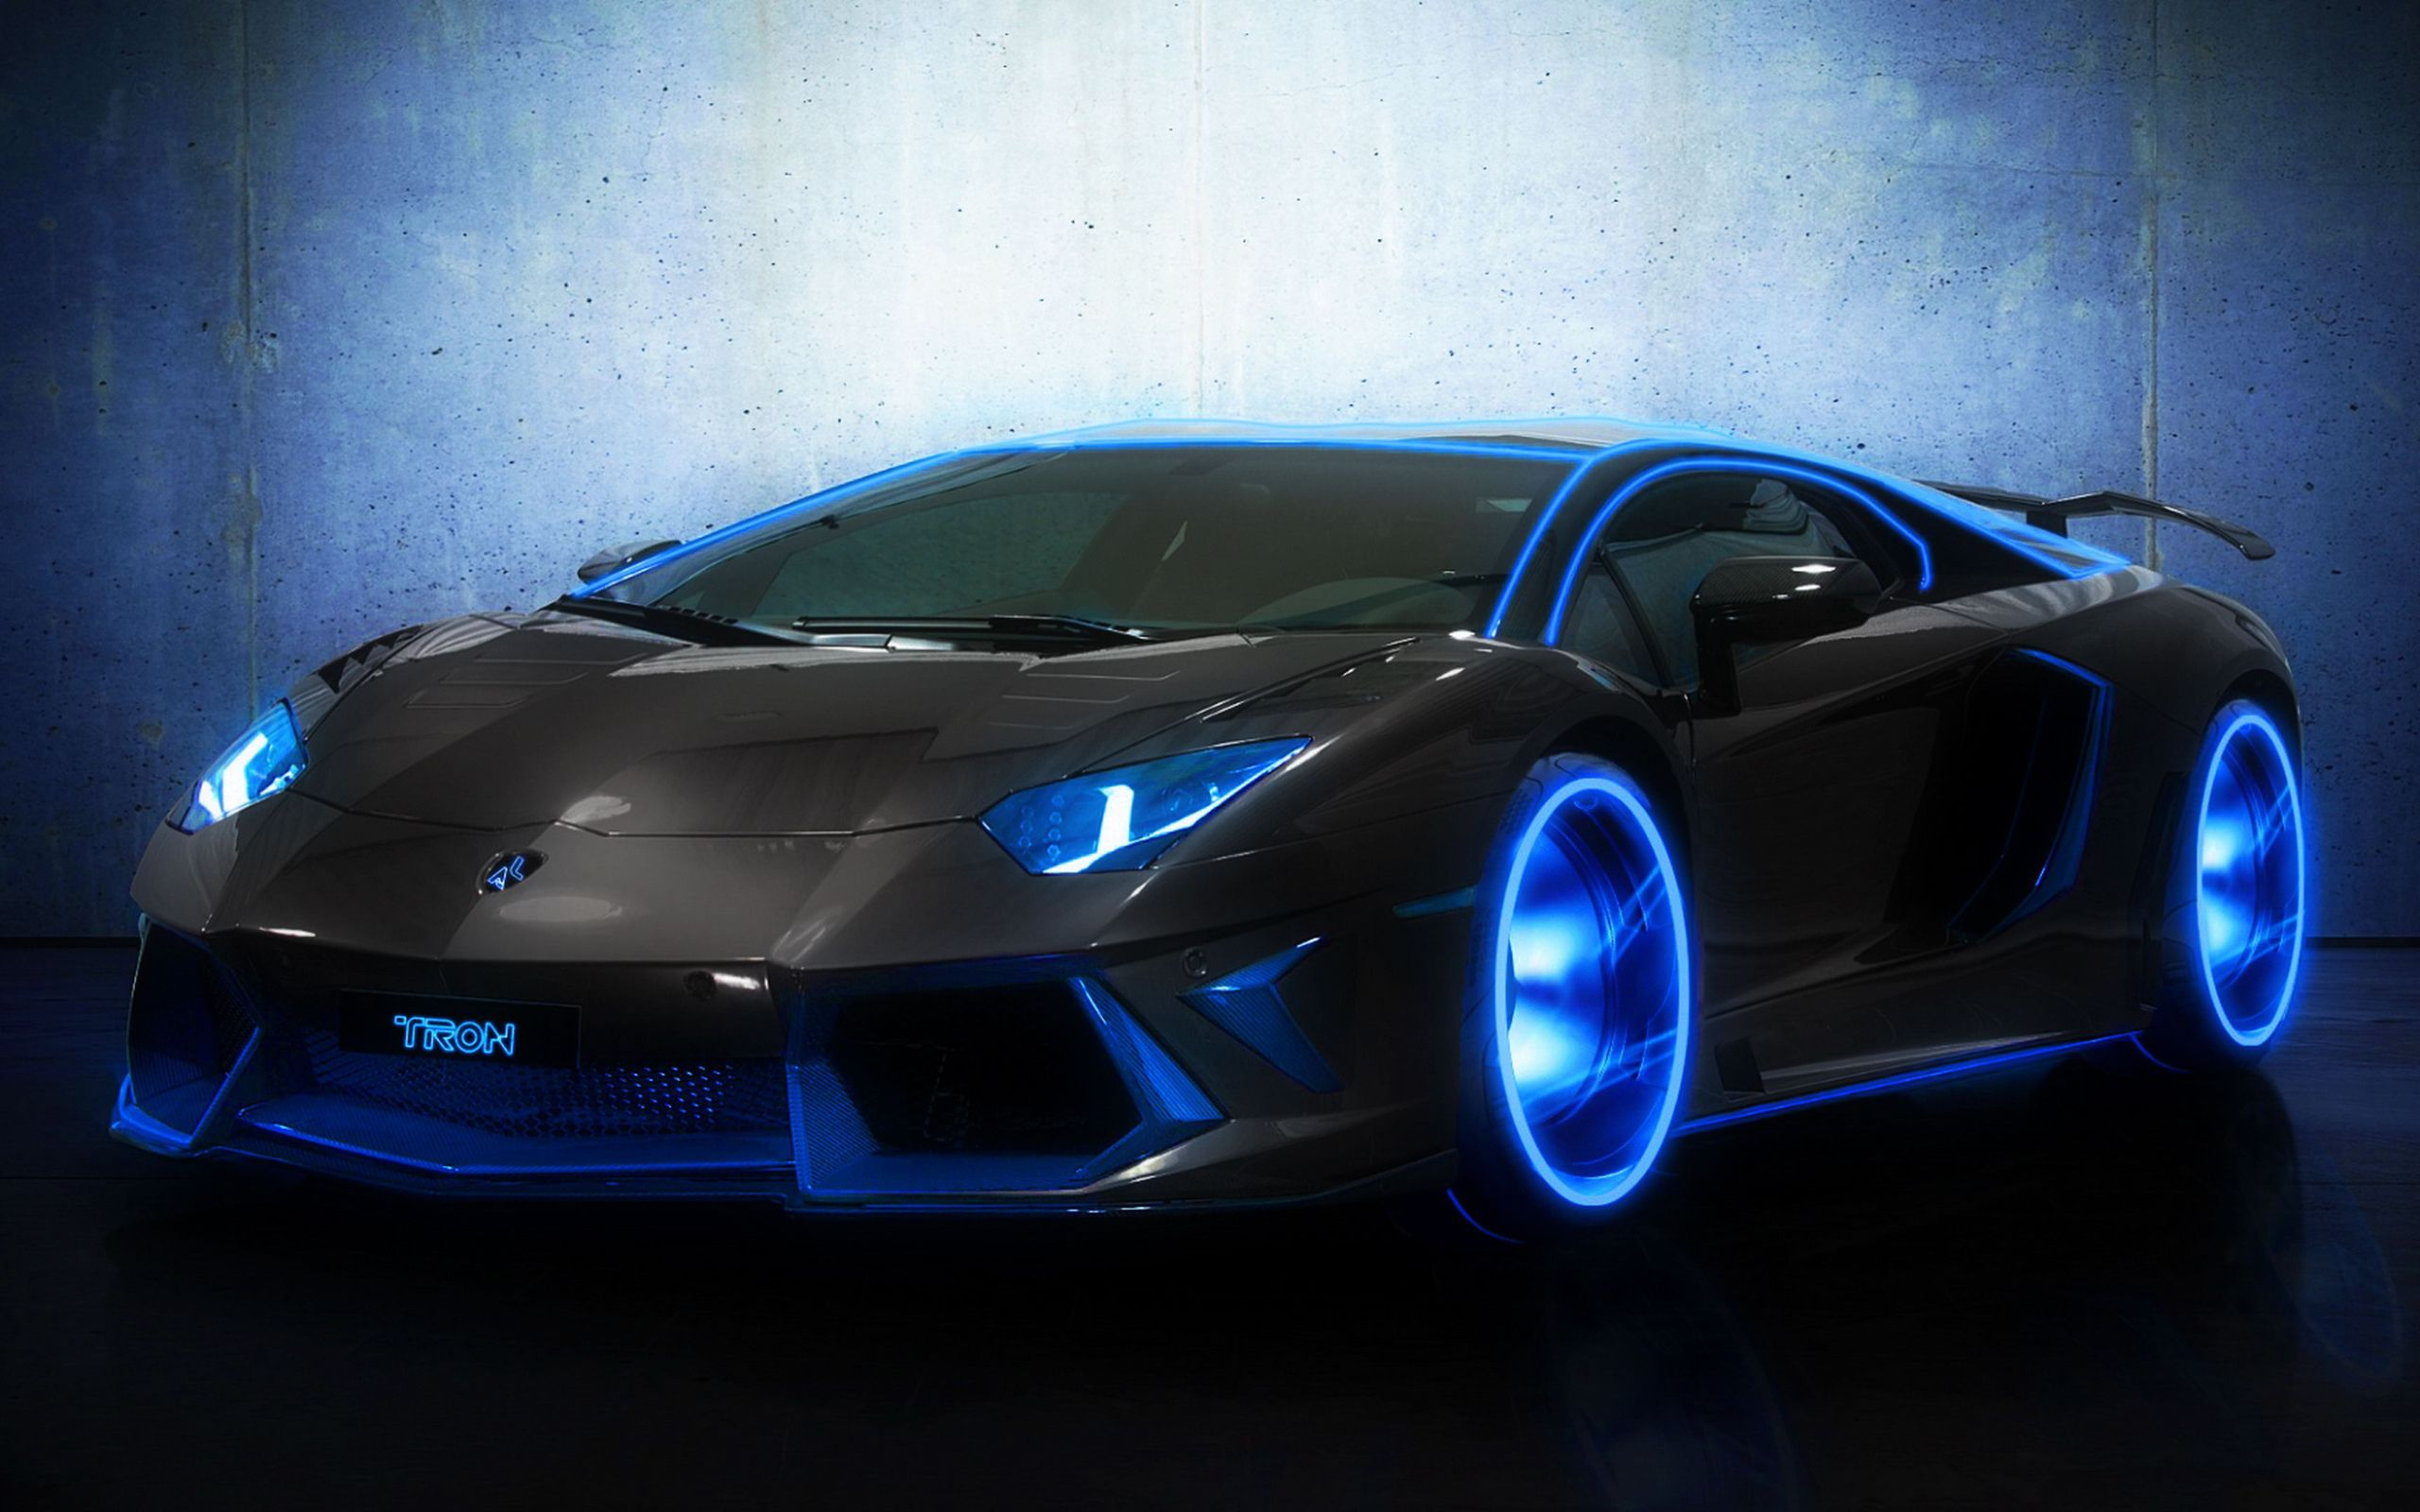 Blue Lambo Wallpapers Top Free Blue Lambo Backgrounds Wallpaperaccess